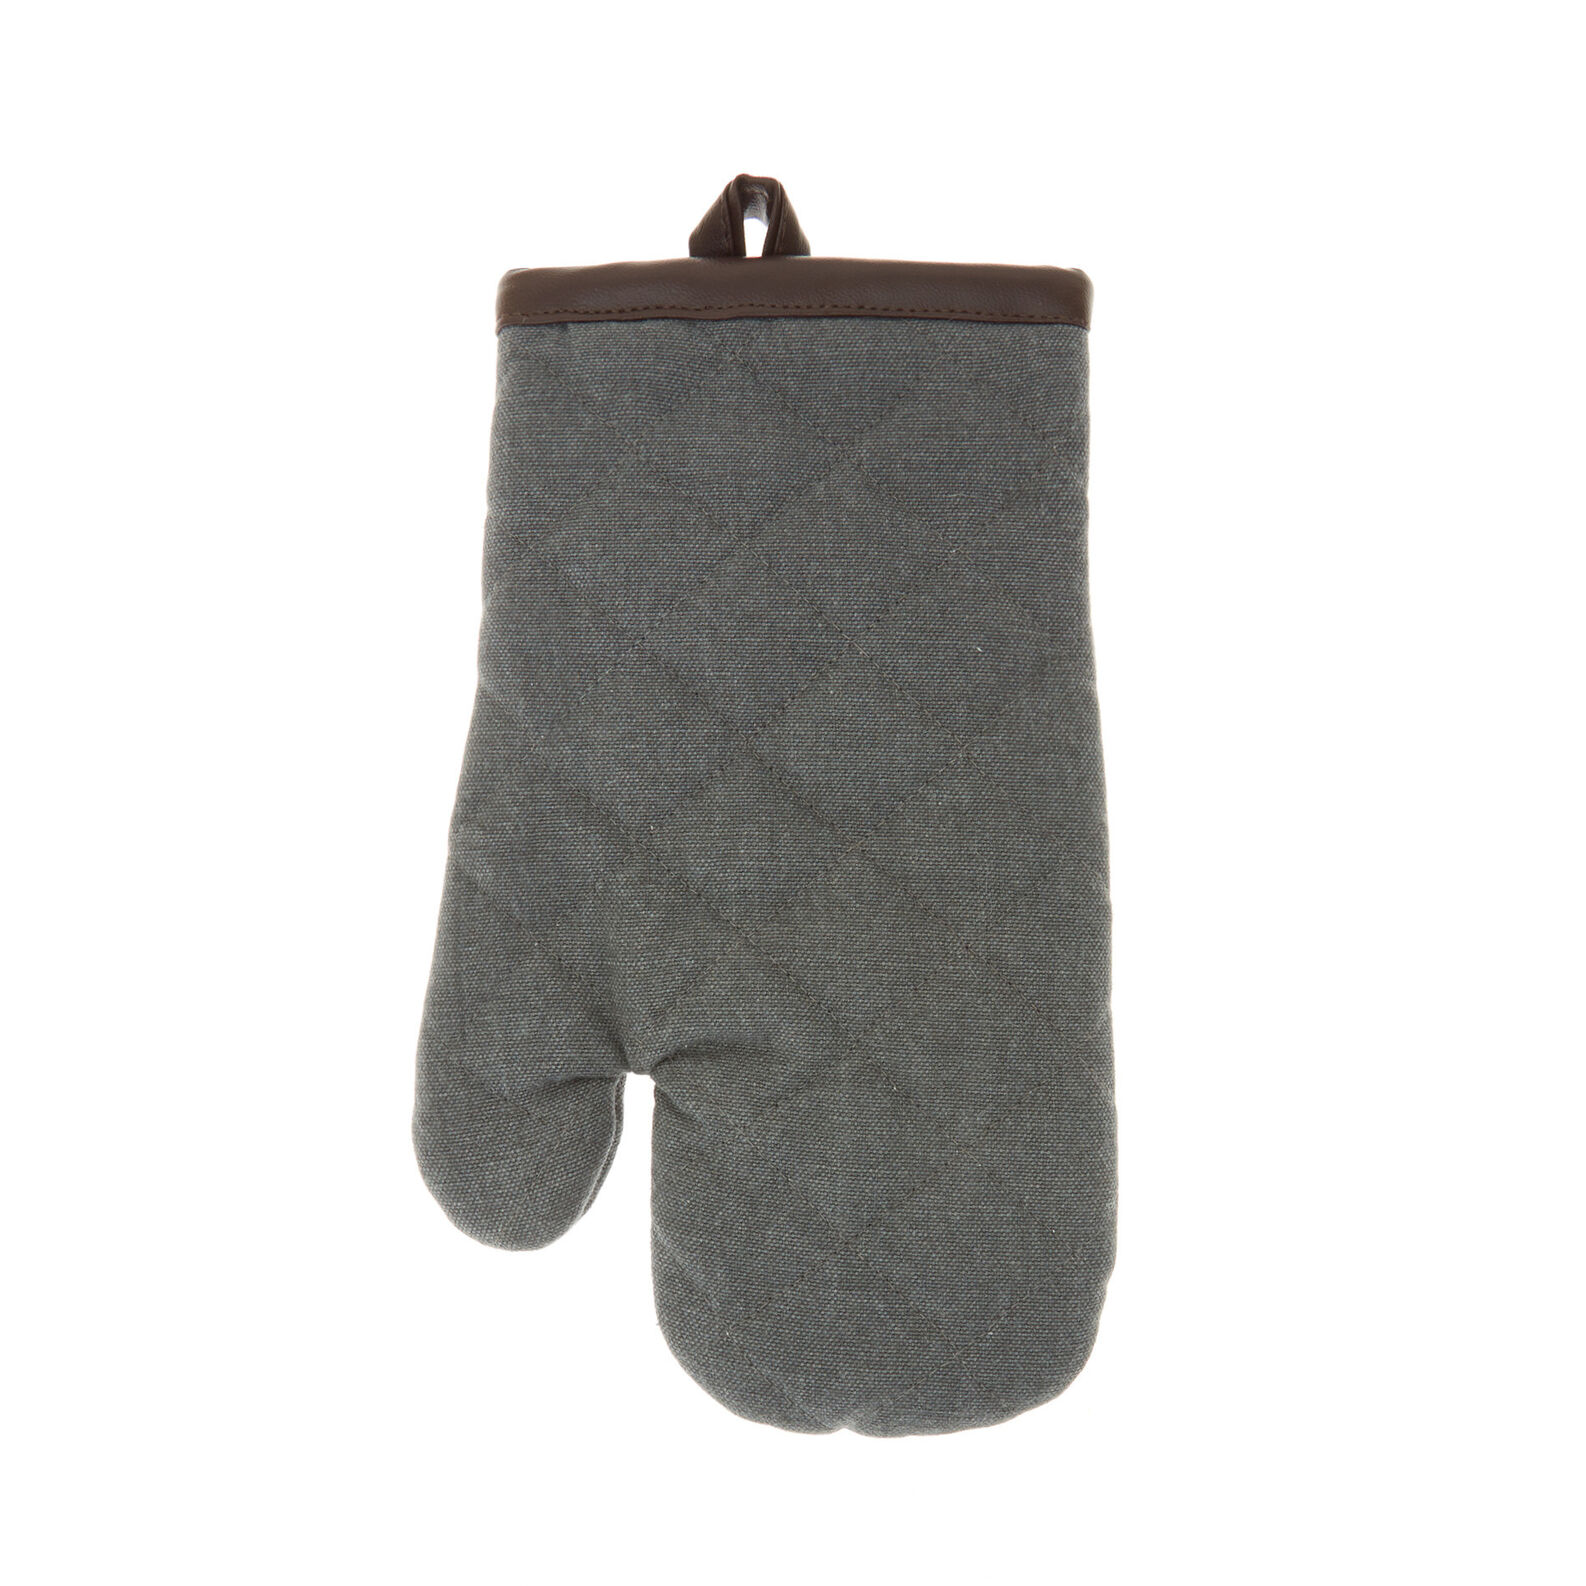 Stonewashed cotton kitchen glove